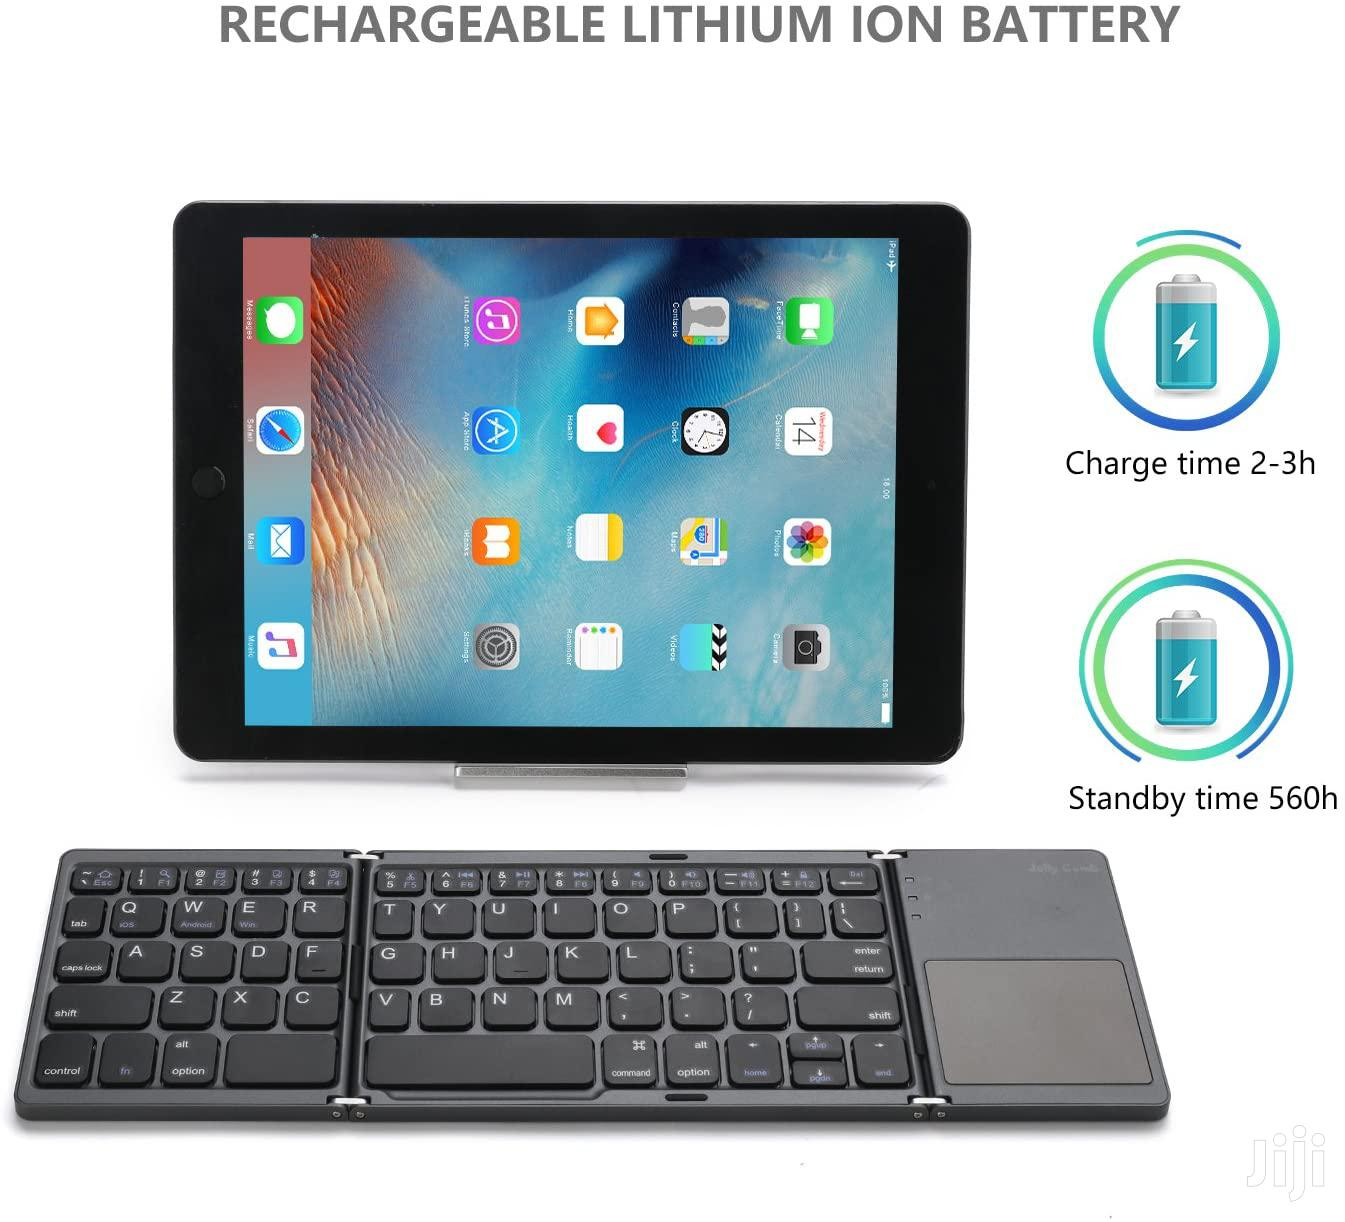 Foldable Bluetooth Keyboard With Touchpad - B033 | Accessories for Mobile Phones & Tablets for sale in Ilala, Dar es Salaam, Tanzania